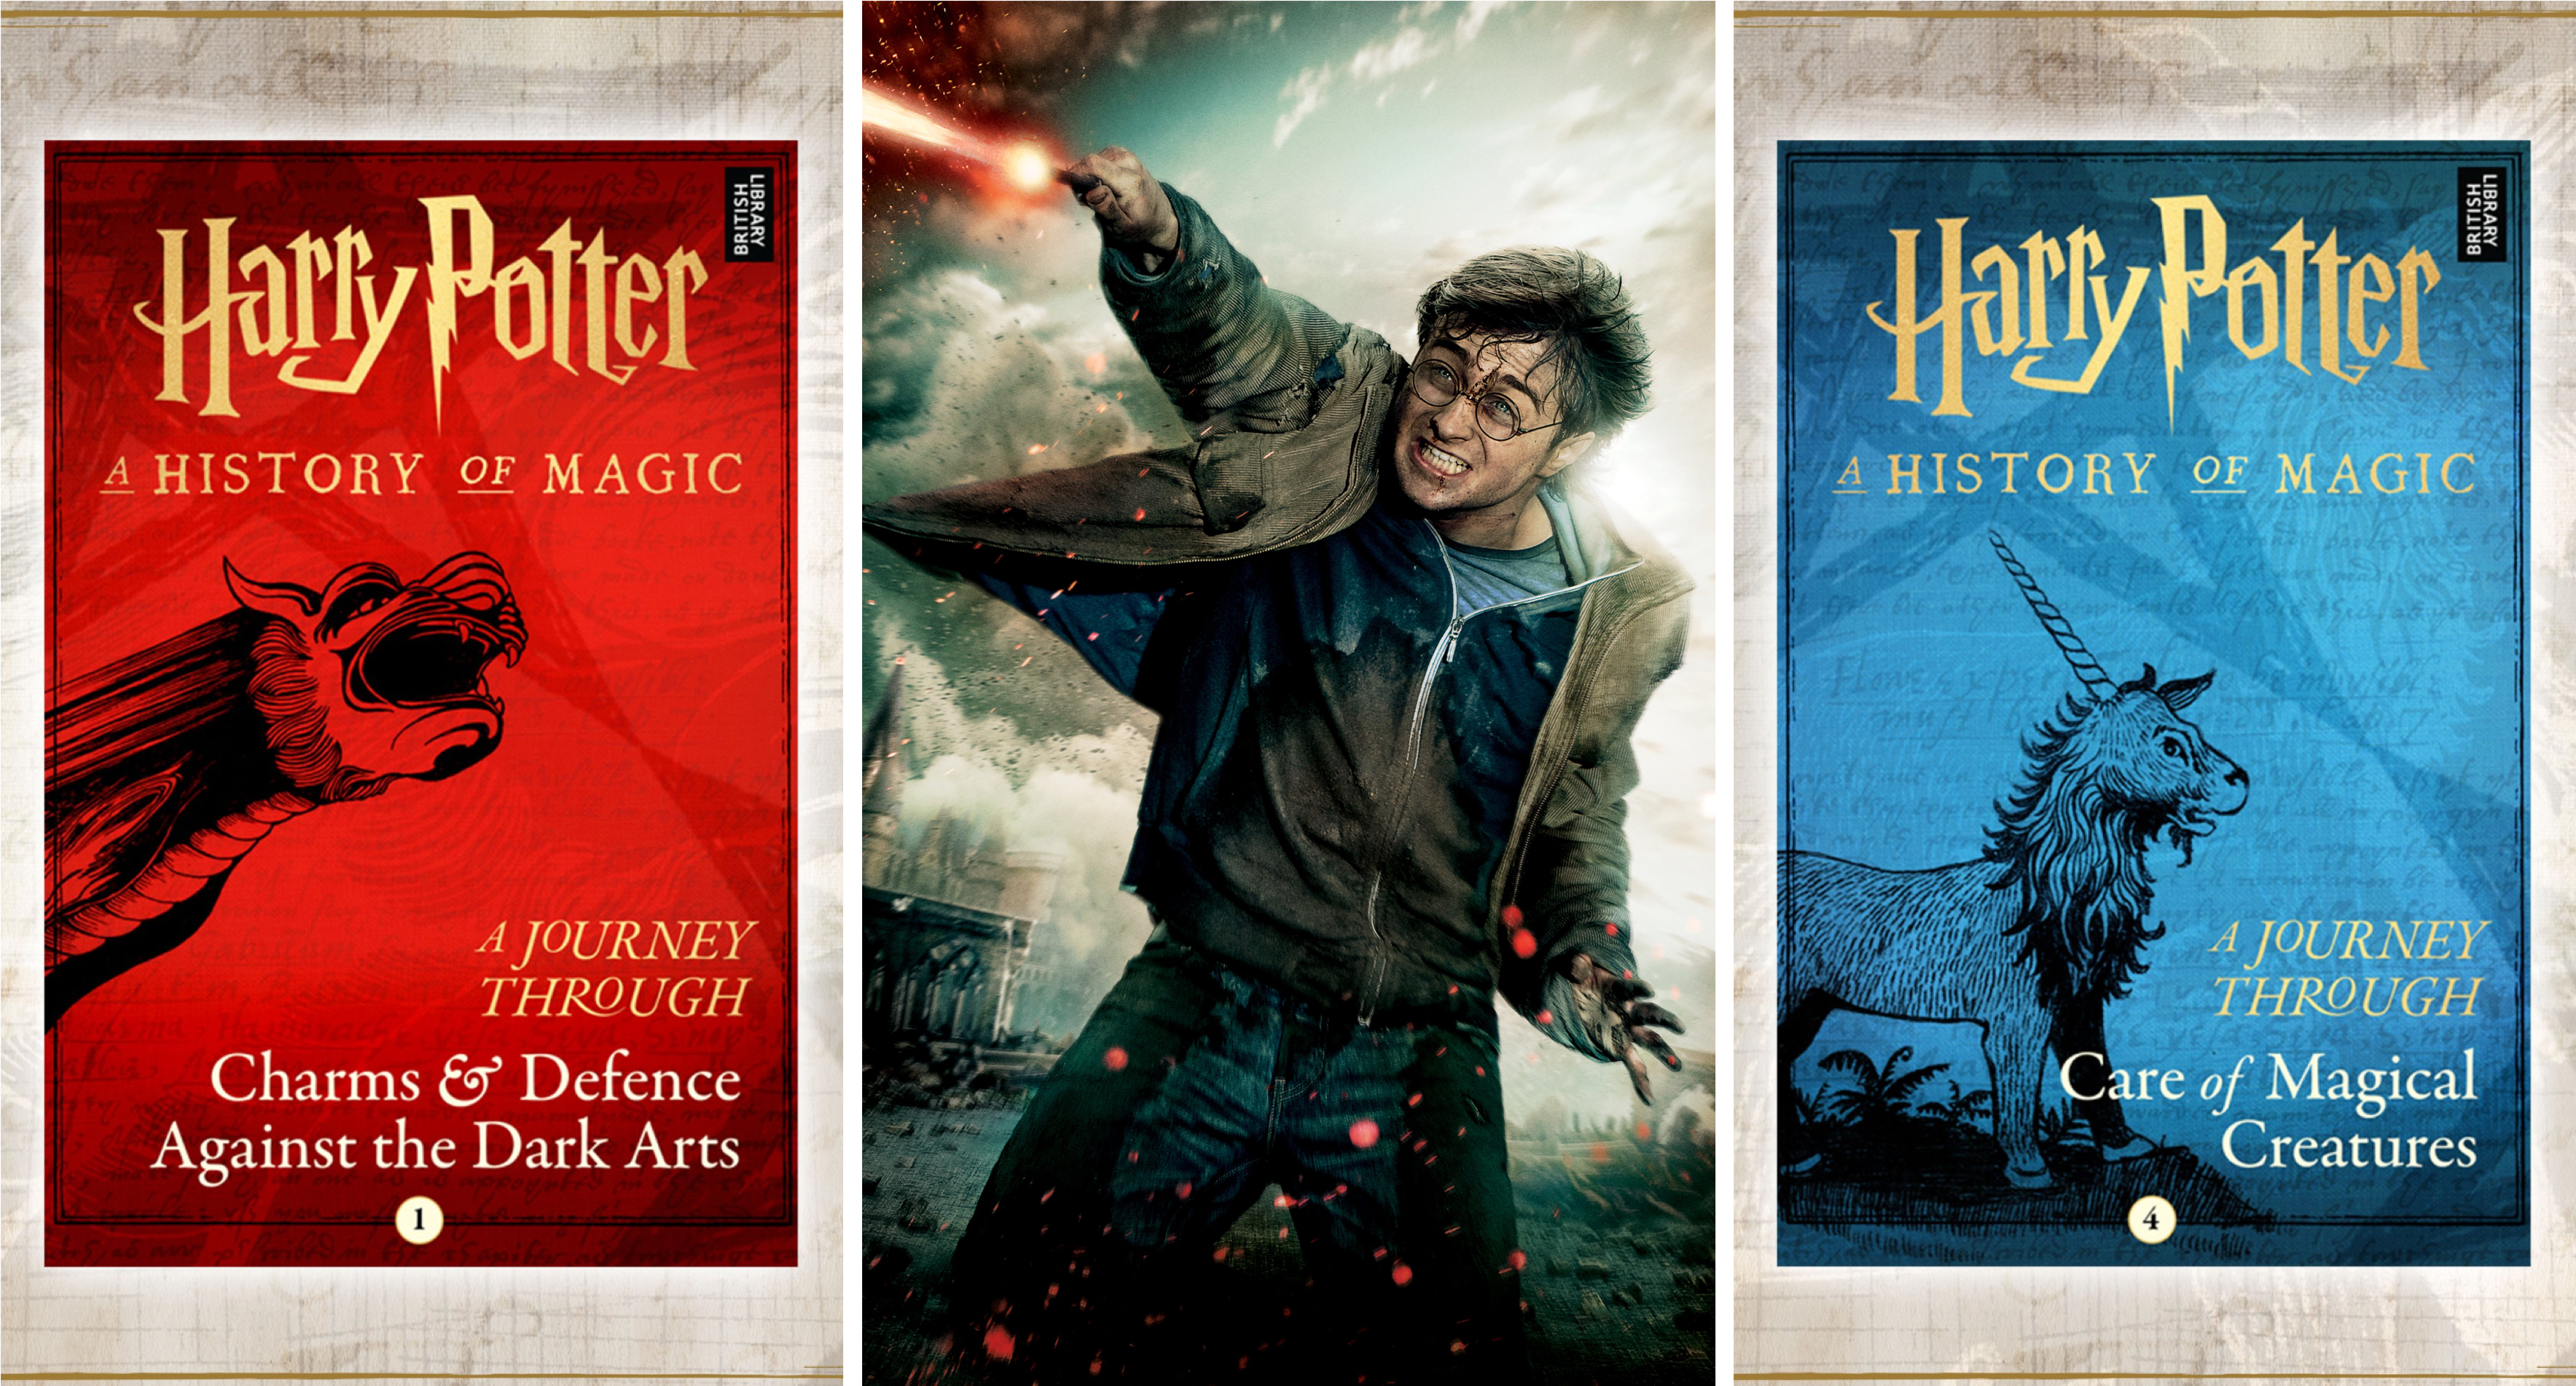 J K Rowling Set To Release A History Of Magic Harry Potter Books